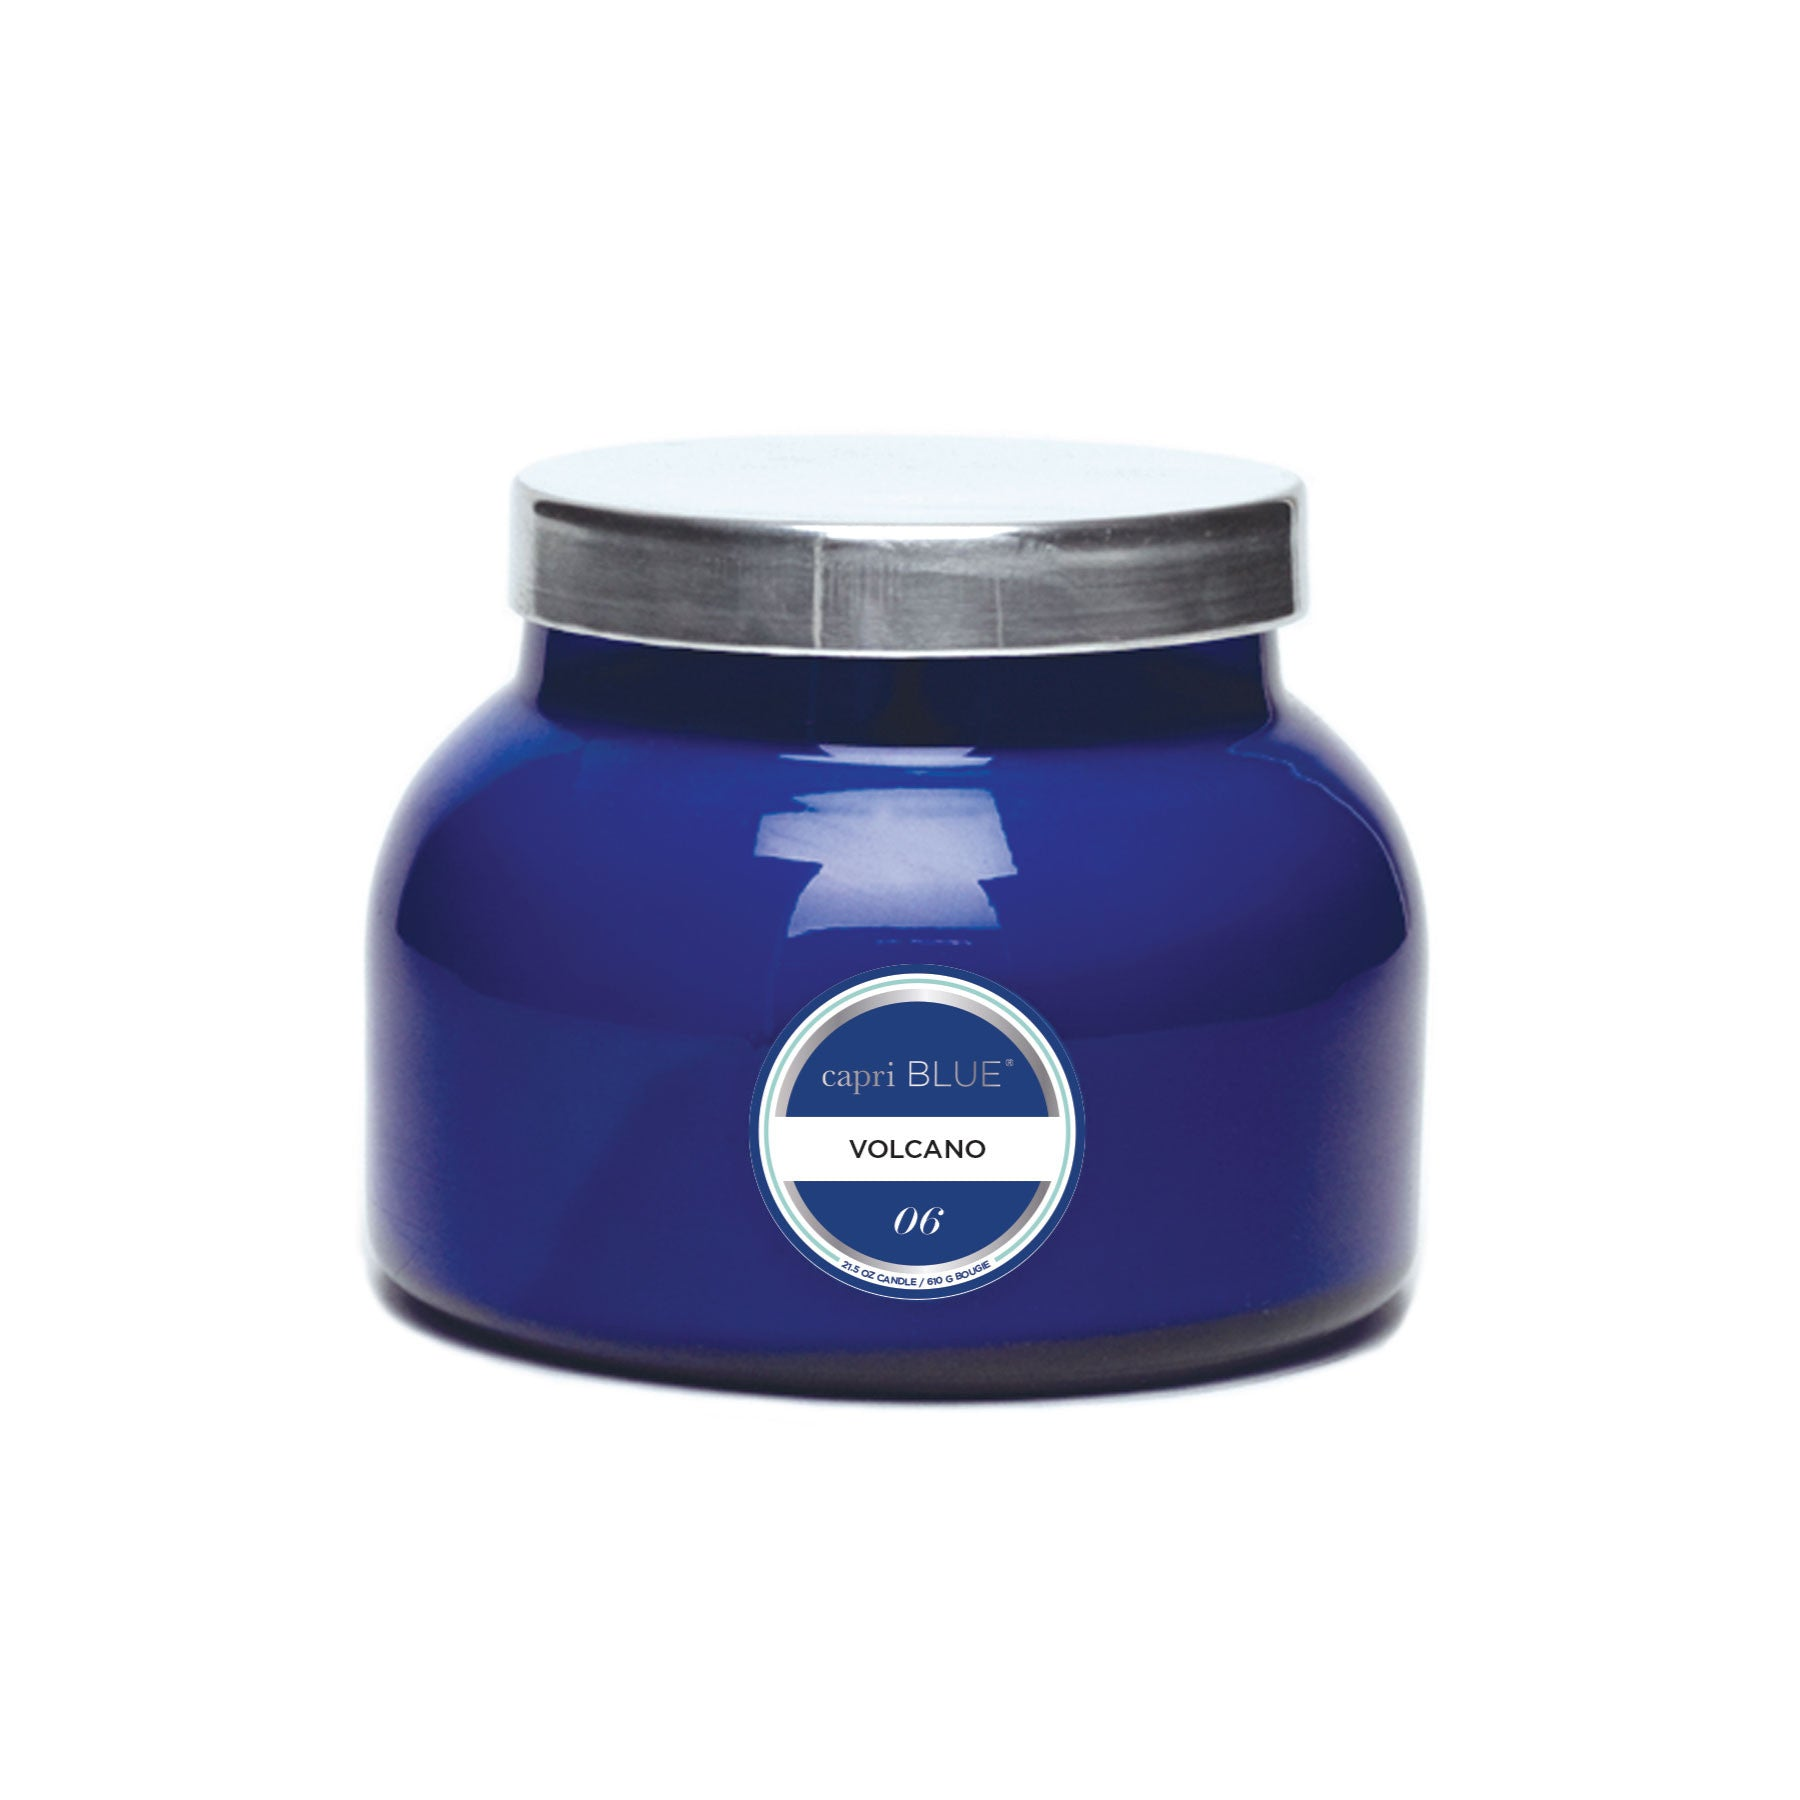 Capri Blue Signature Candle Jar Volcano The Painted House